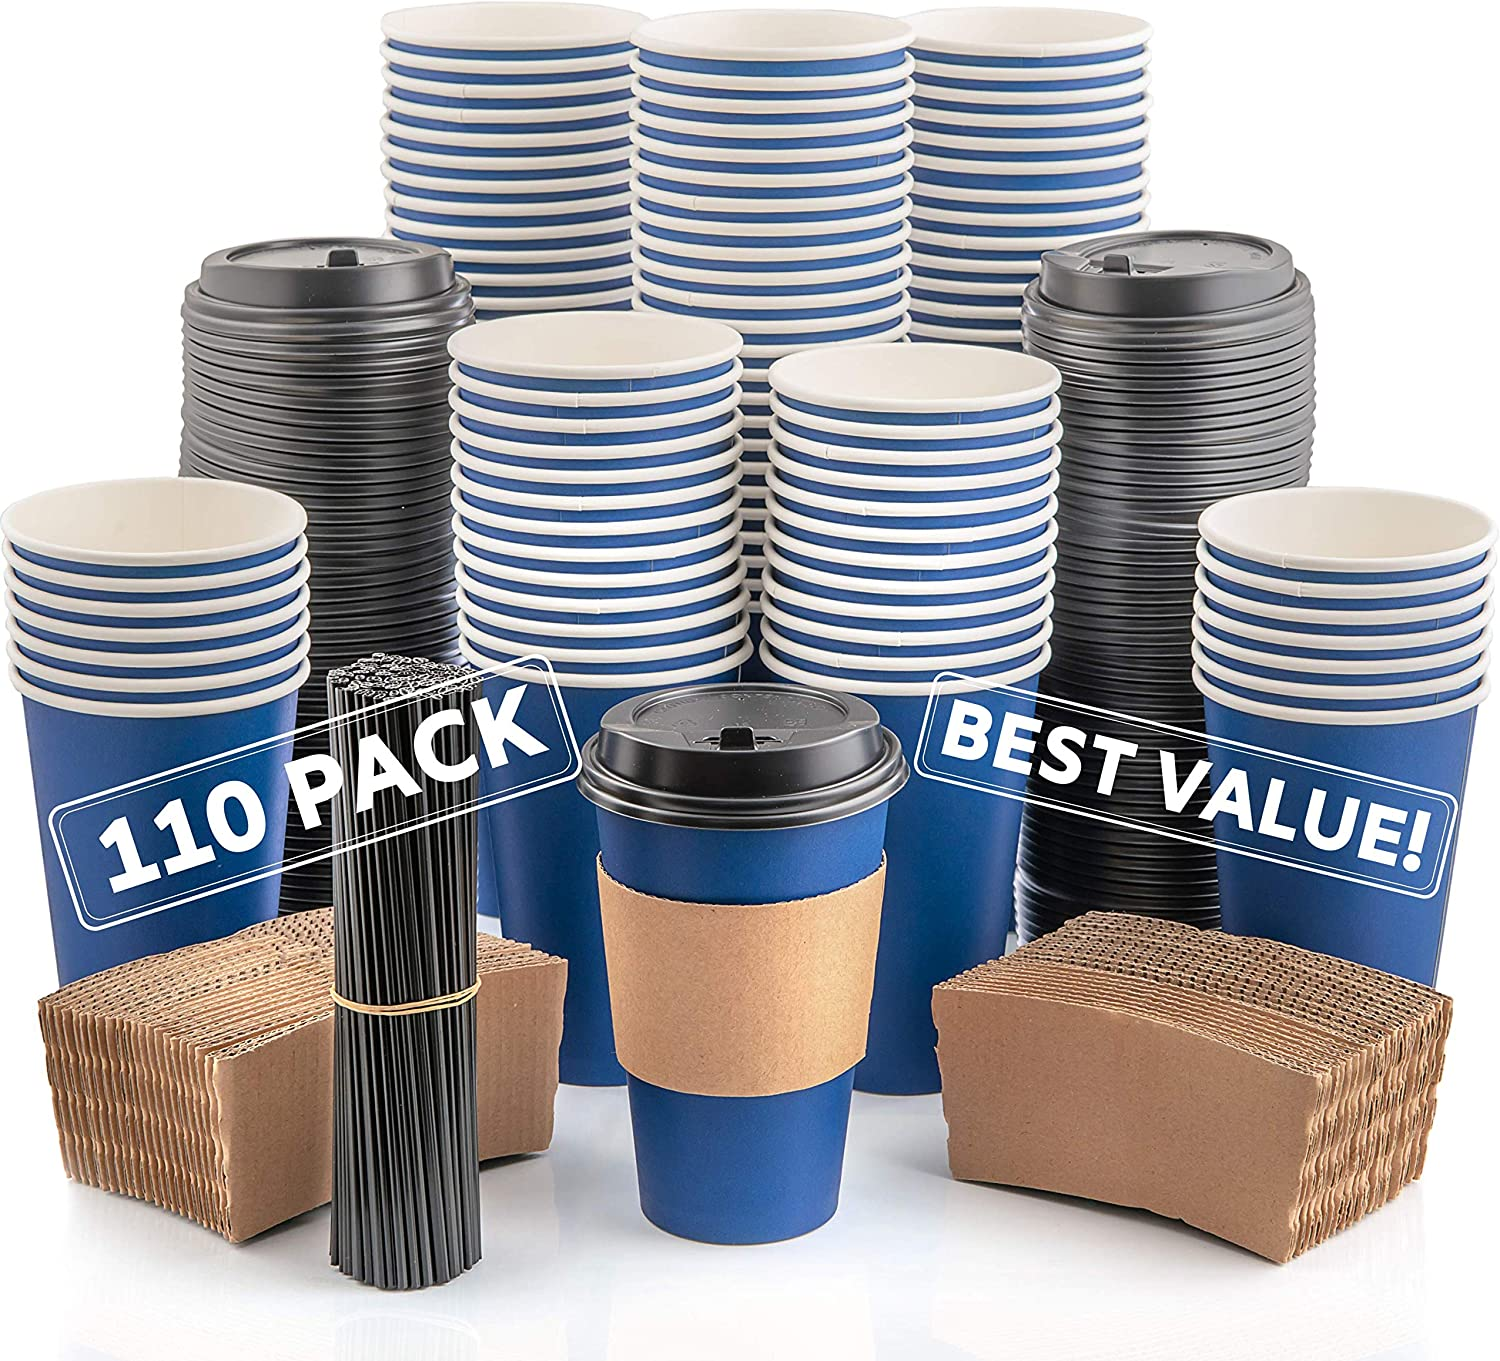 110 Pack Disposable Coffee Cups with Lids - Premium Quality 16 oz To Go Coffee Cups with Sleeves, Tight Lids to Prevent Leaks & Straws - This Paper Hot Cup Holds Shape With Hot Drinks - Midnight Blue